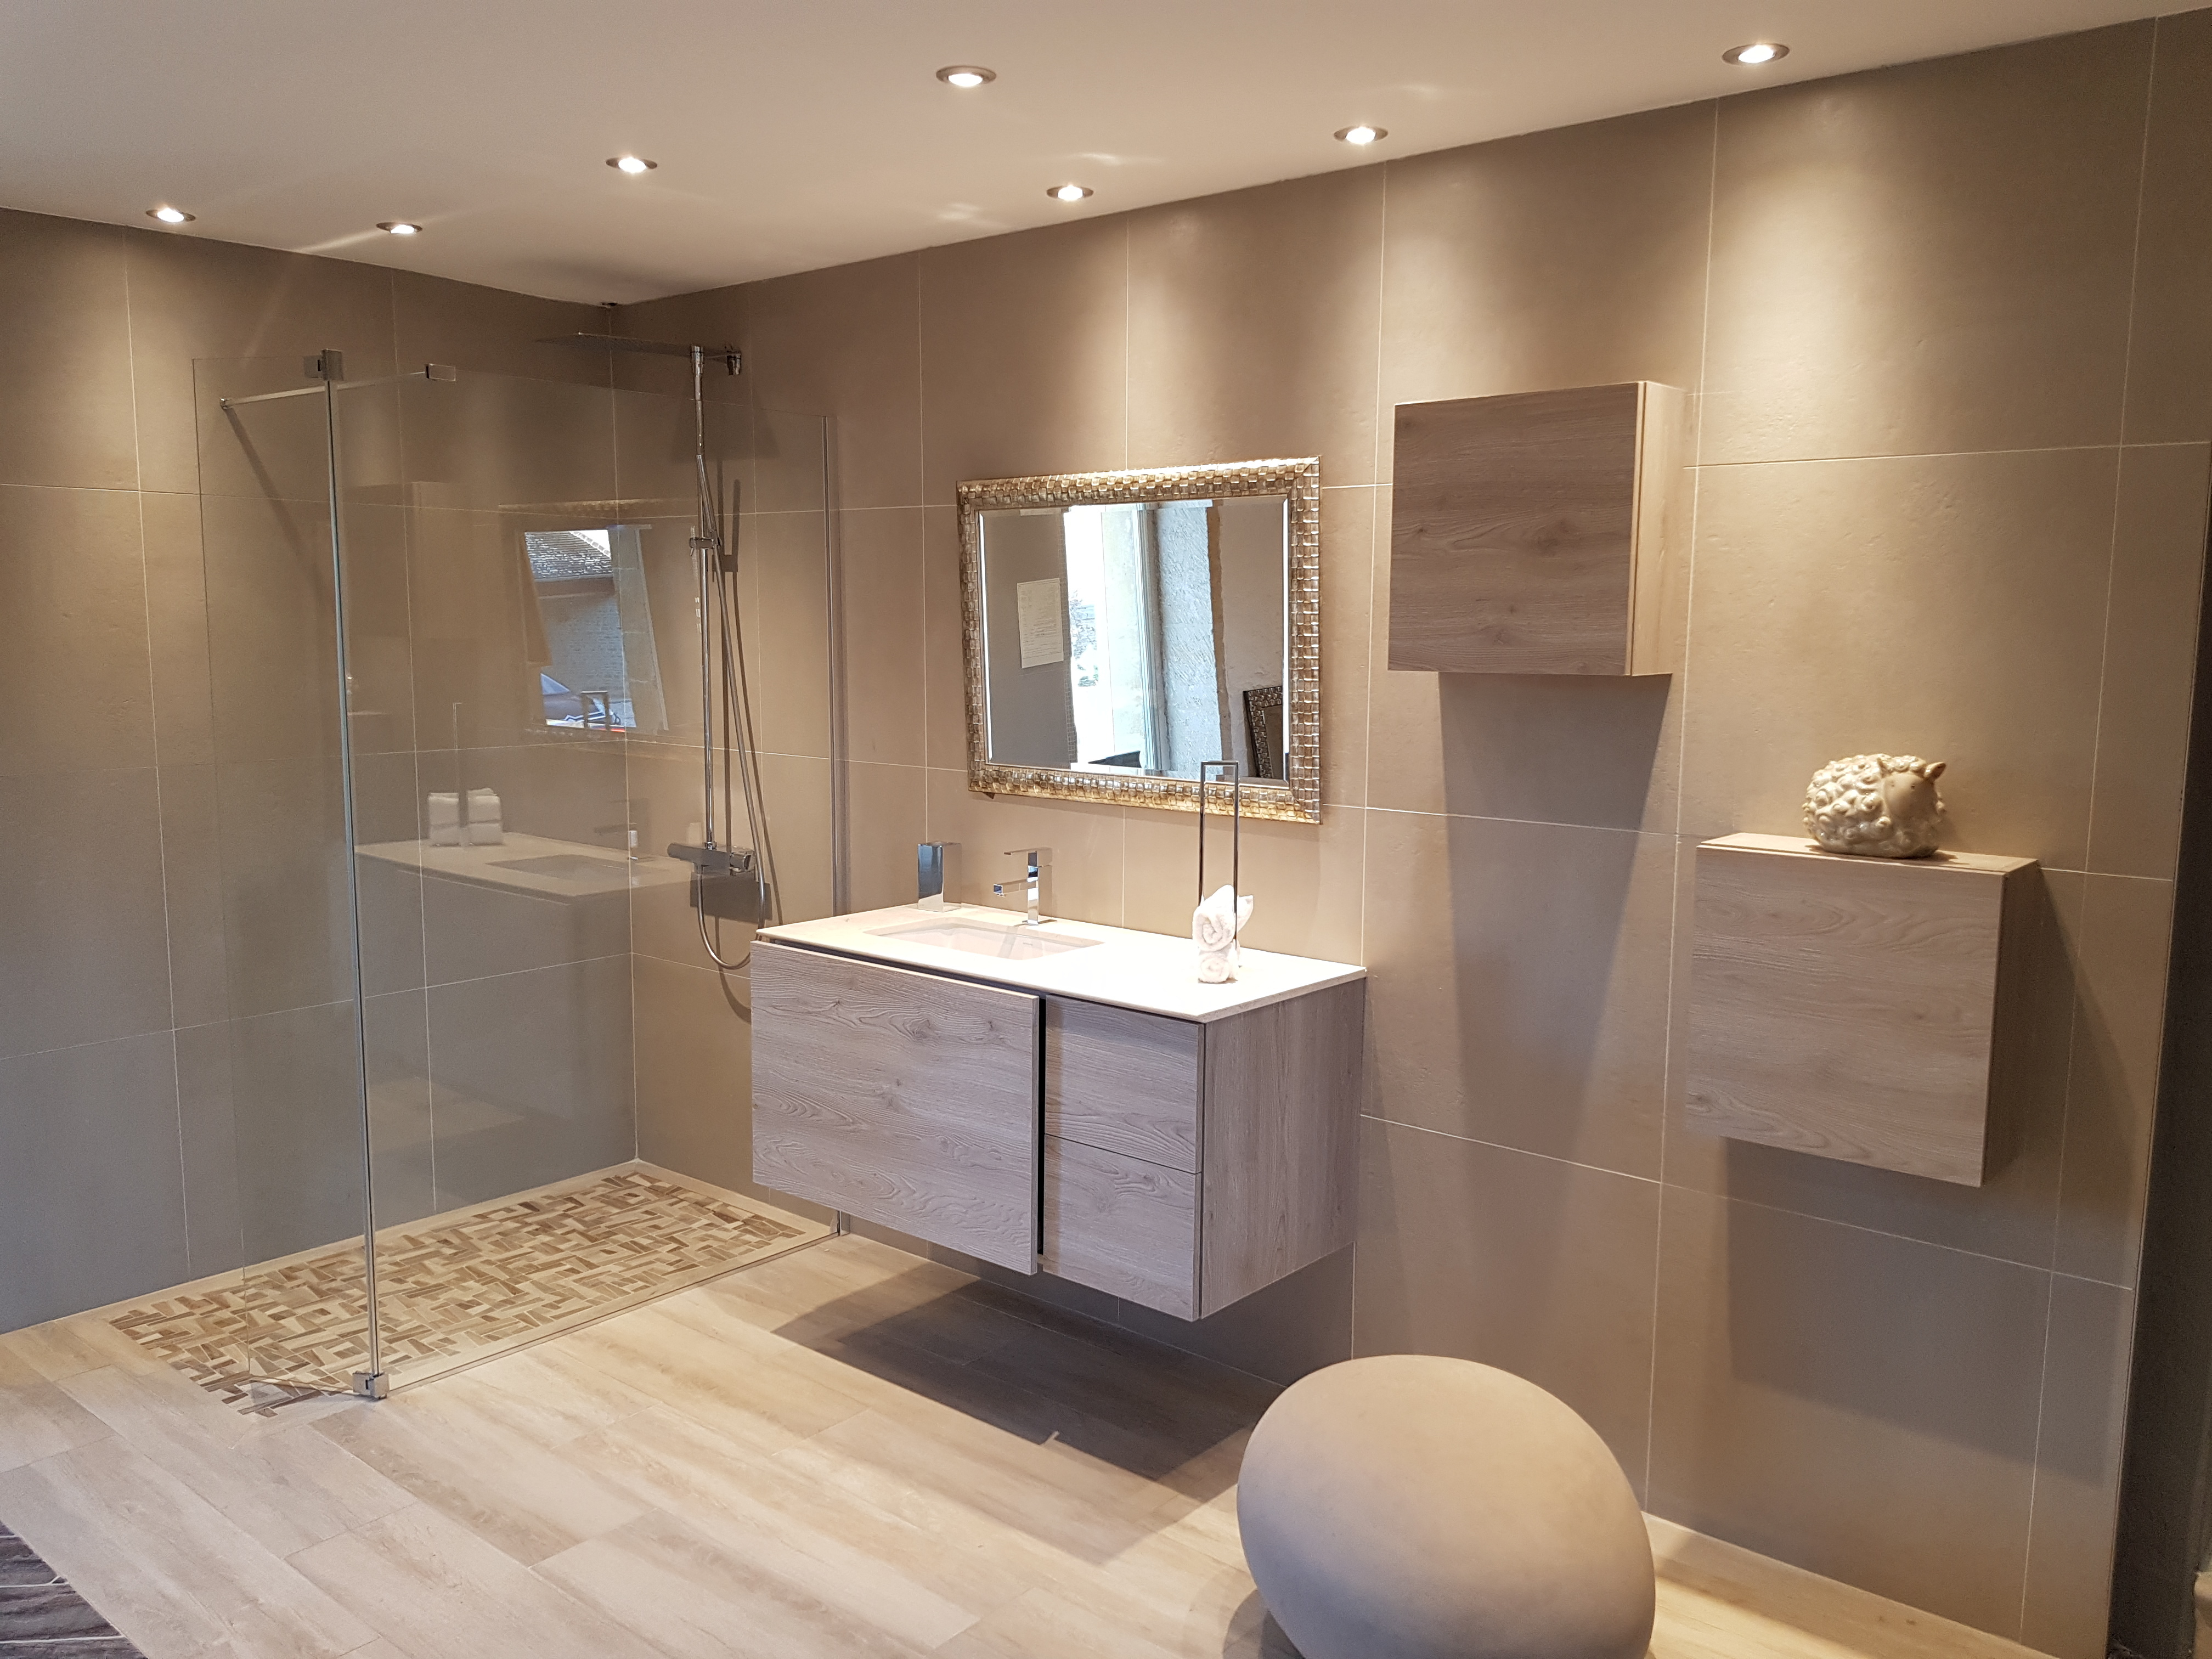 Salle De Bain Grand Carrelage Of Carrelage Aspect Parquet Nivault